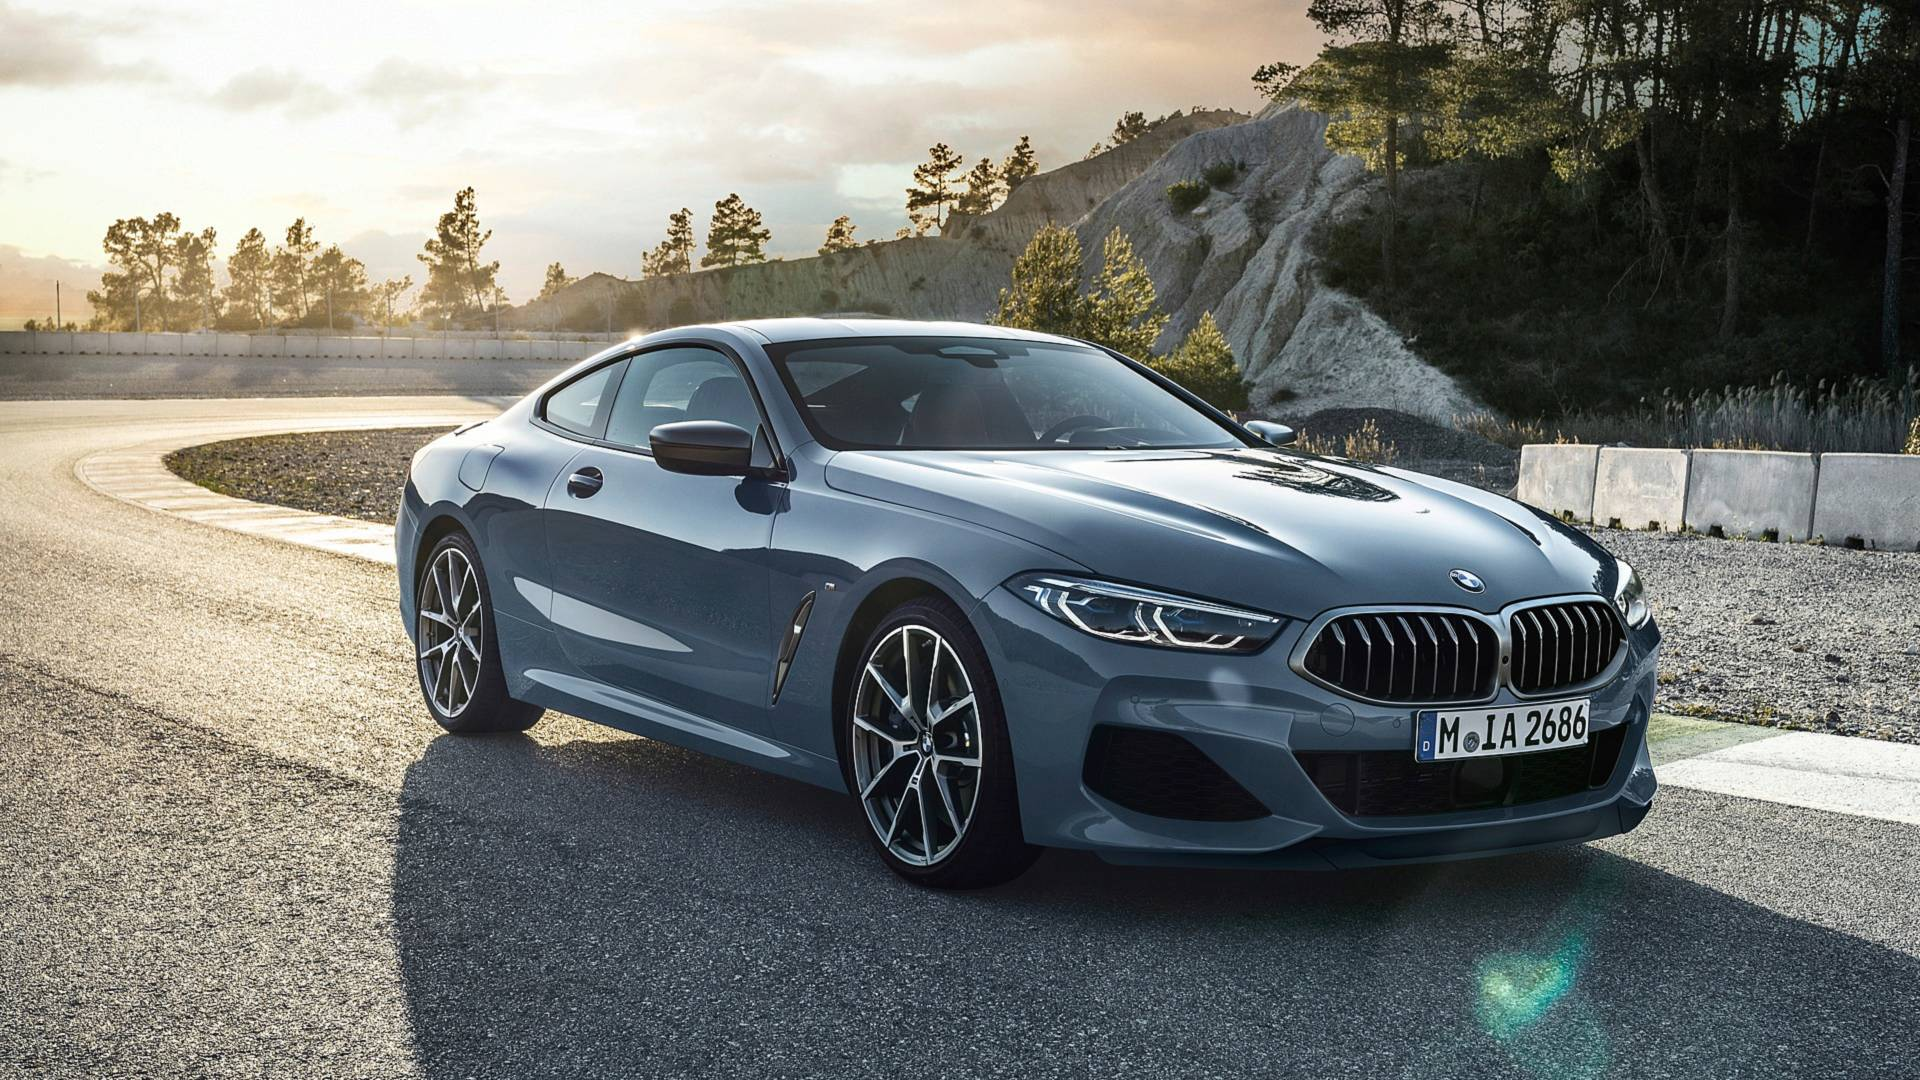 BMW 8 Series Luxury Coupe